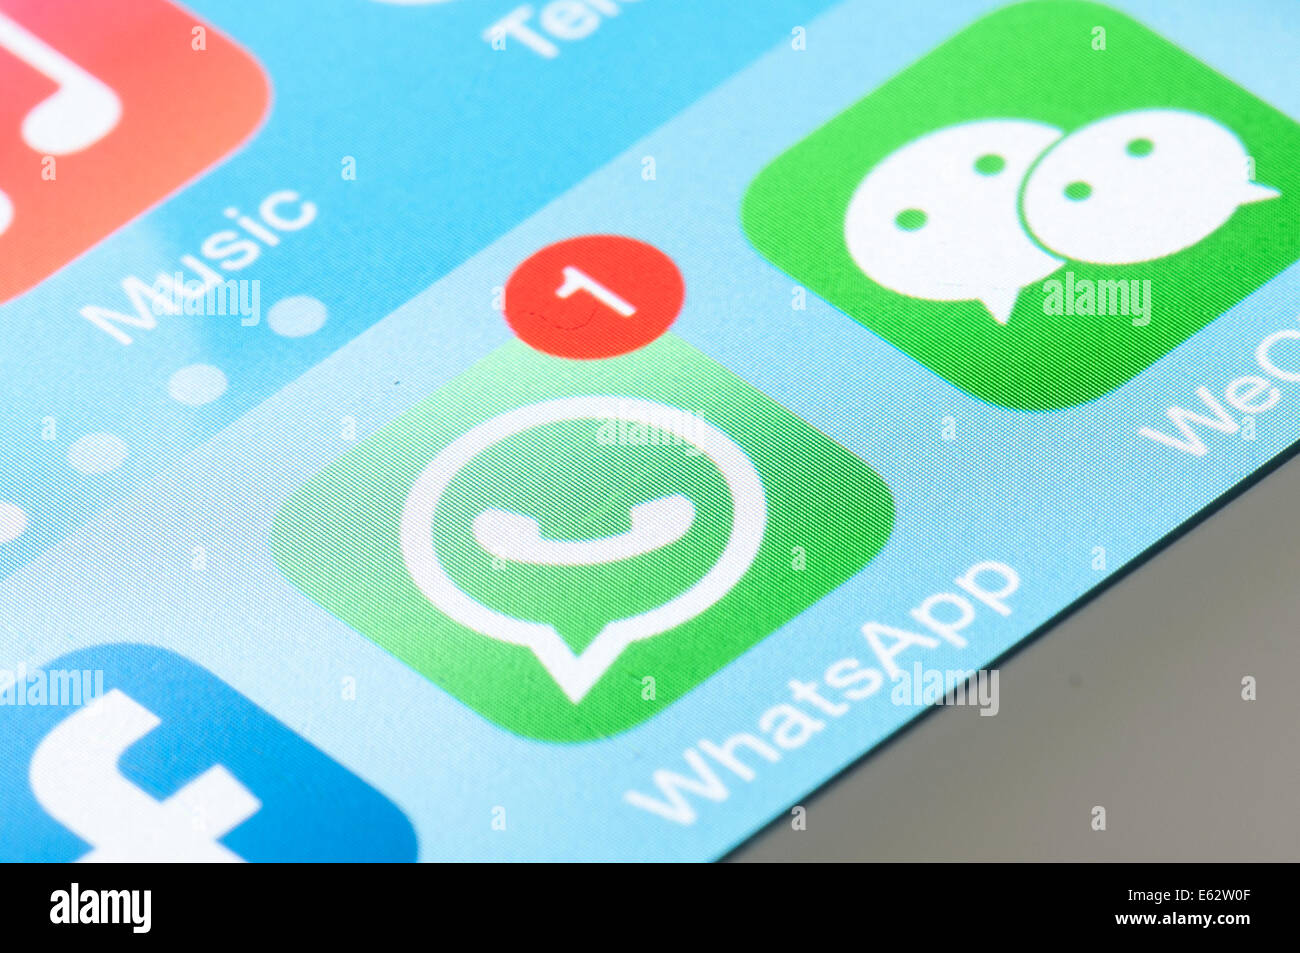 WhatsApp whats app logo icon in mobile screen - Stock Image